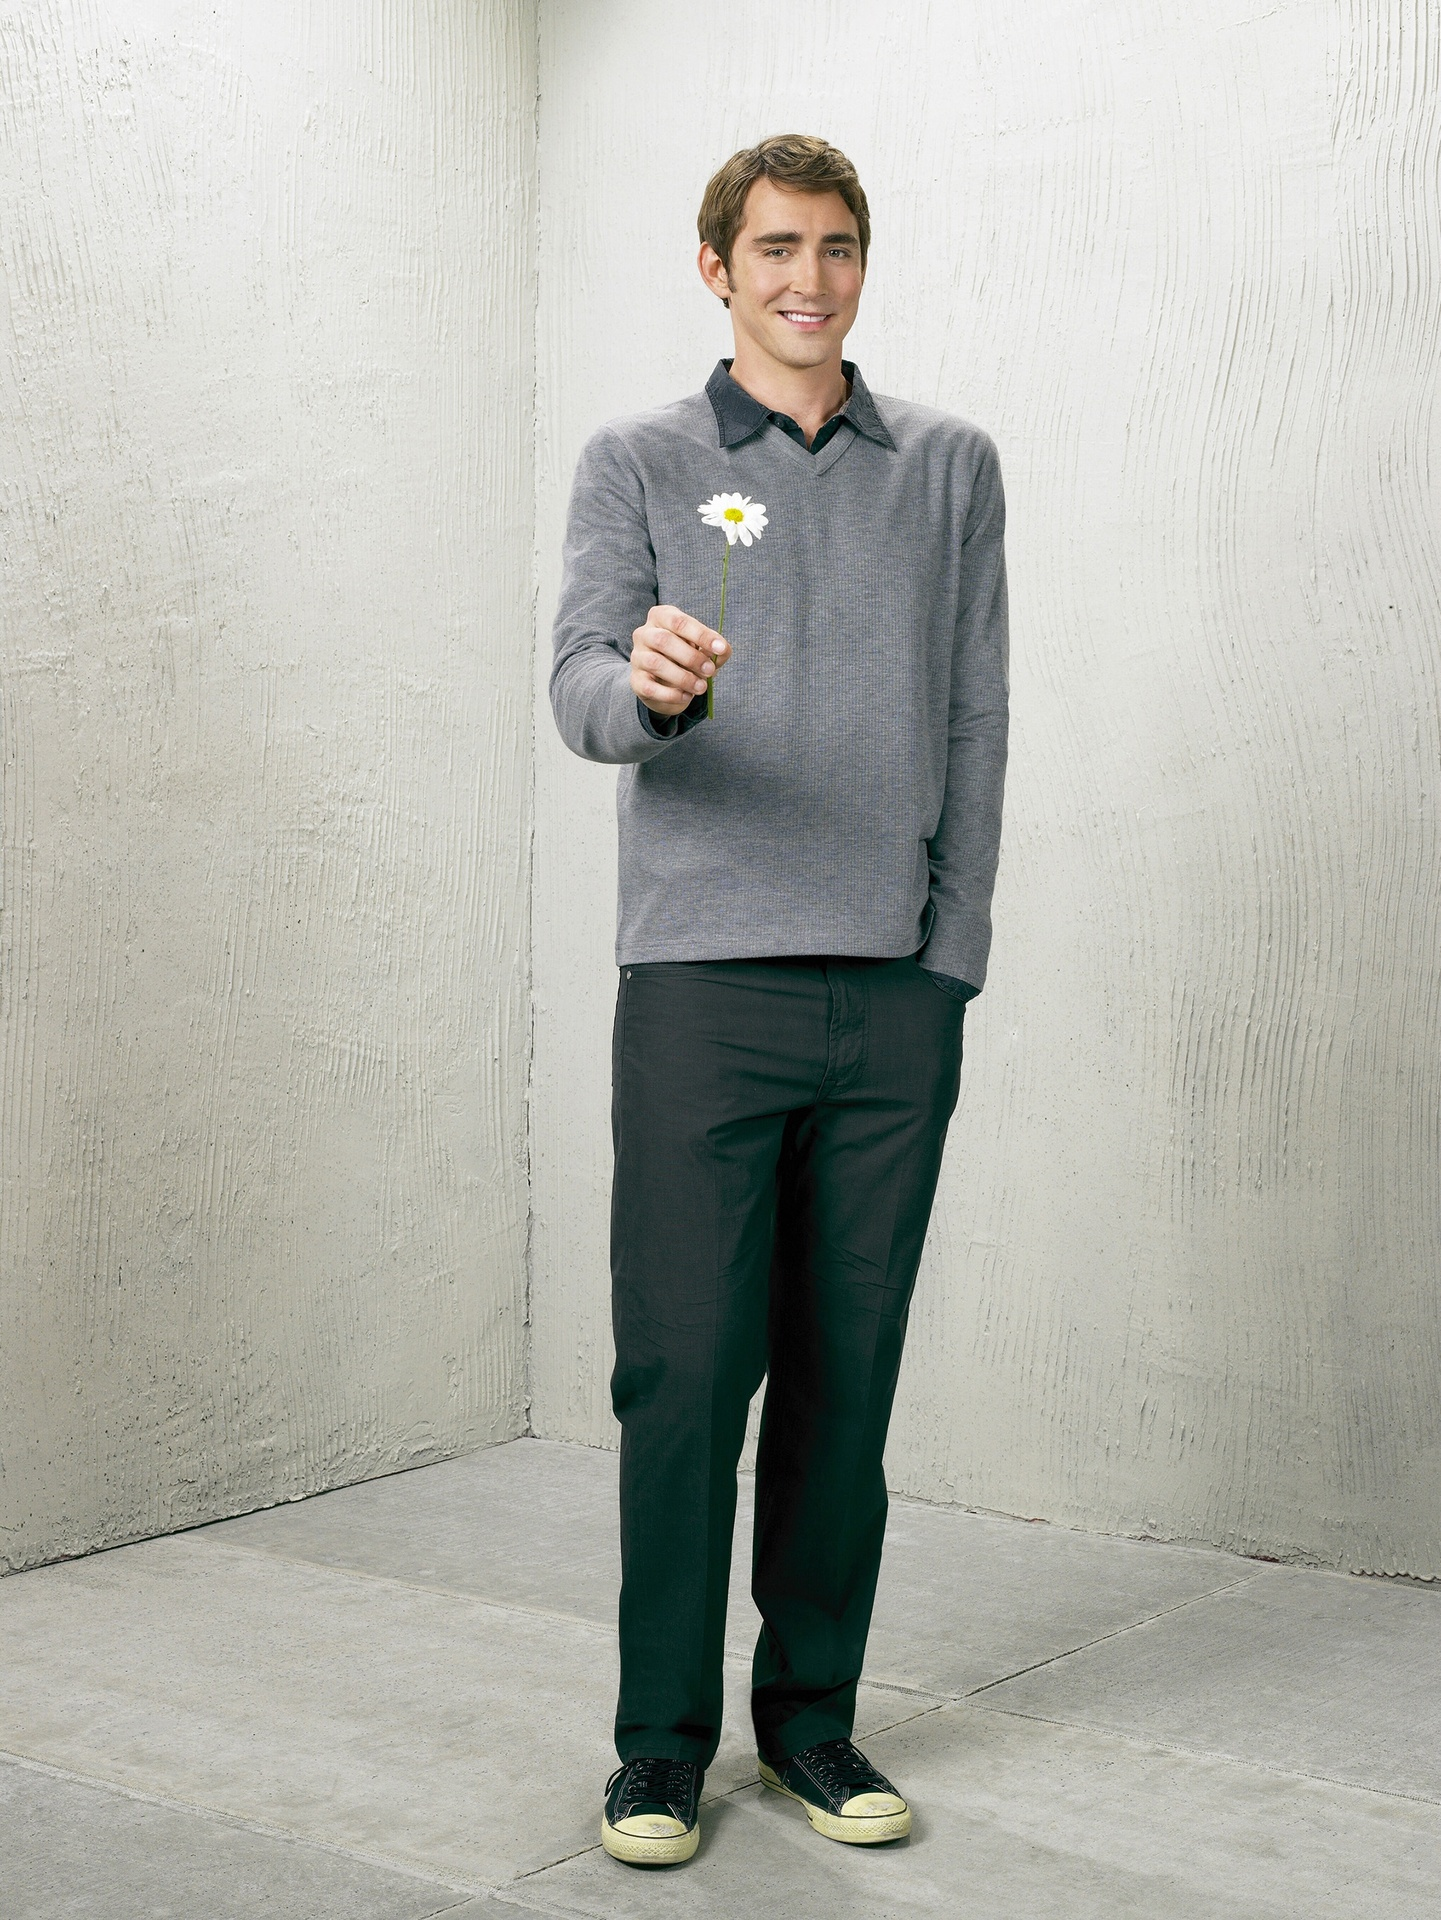 lee pace pushing daisies - photo #33